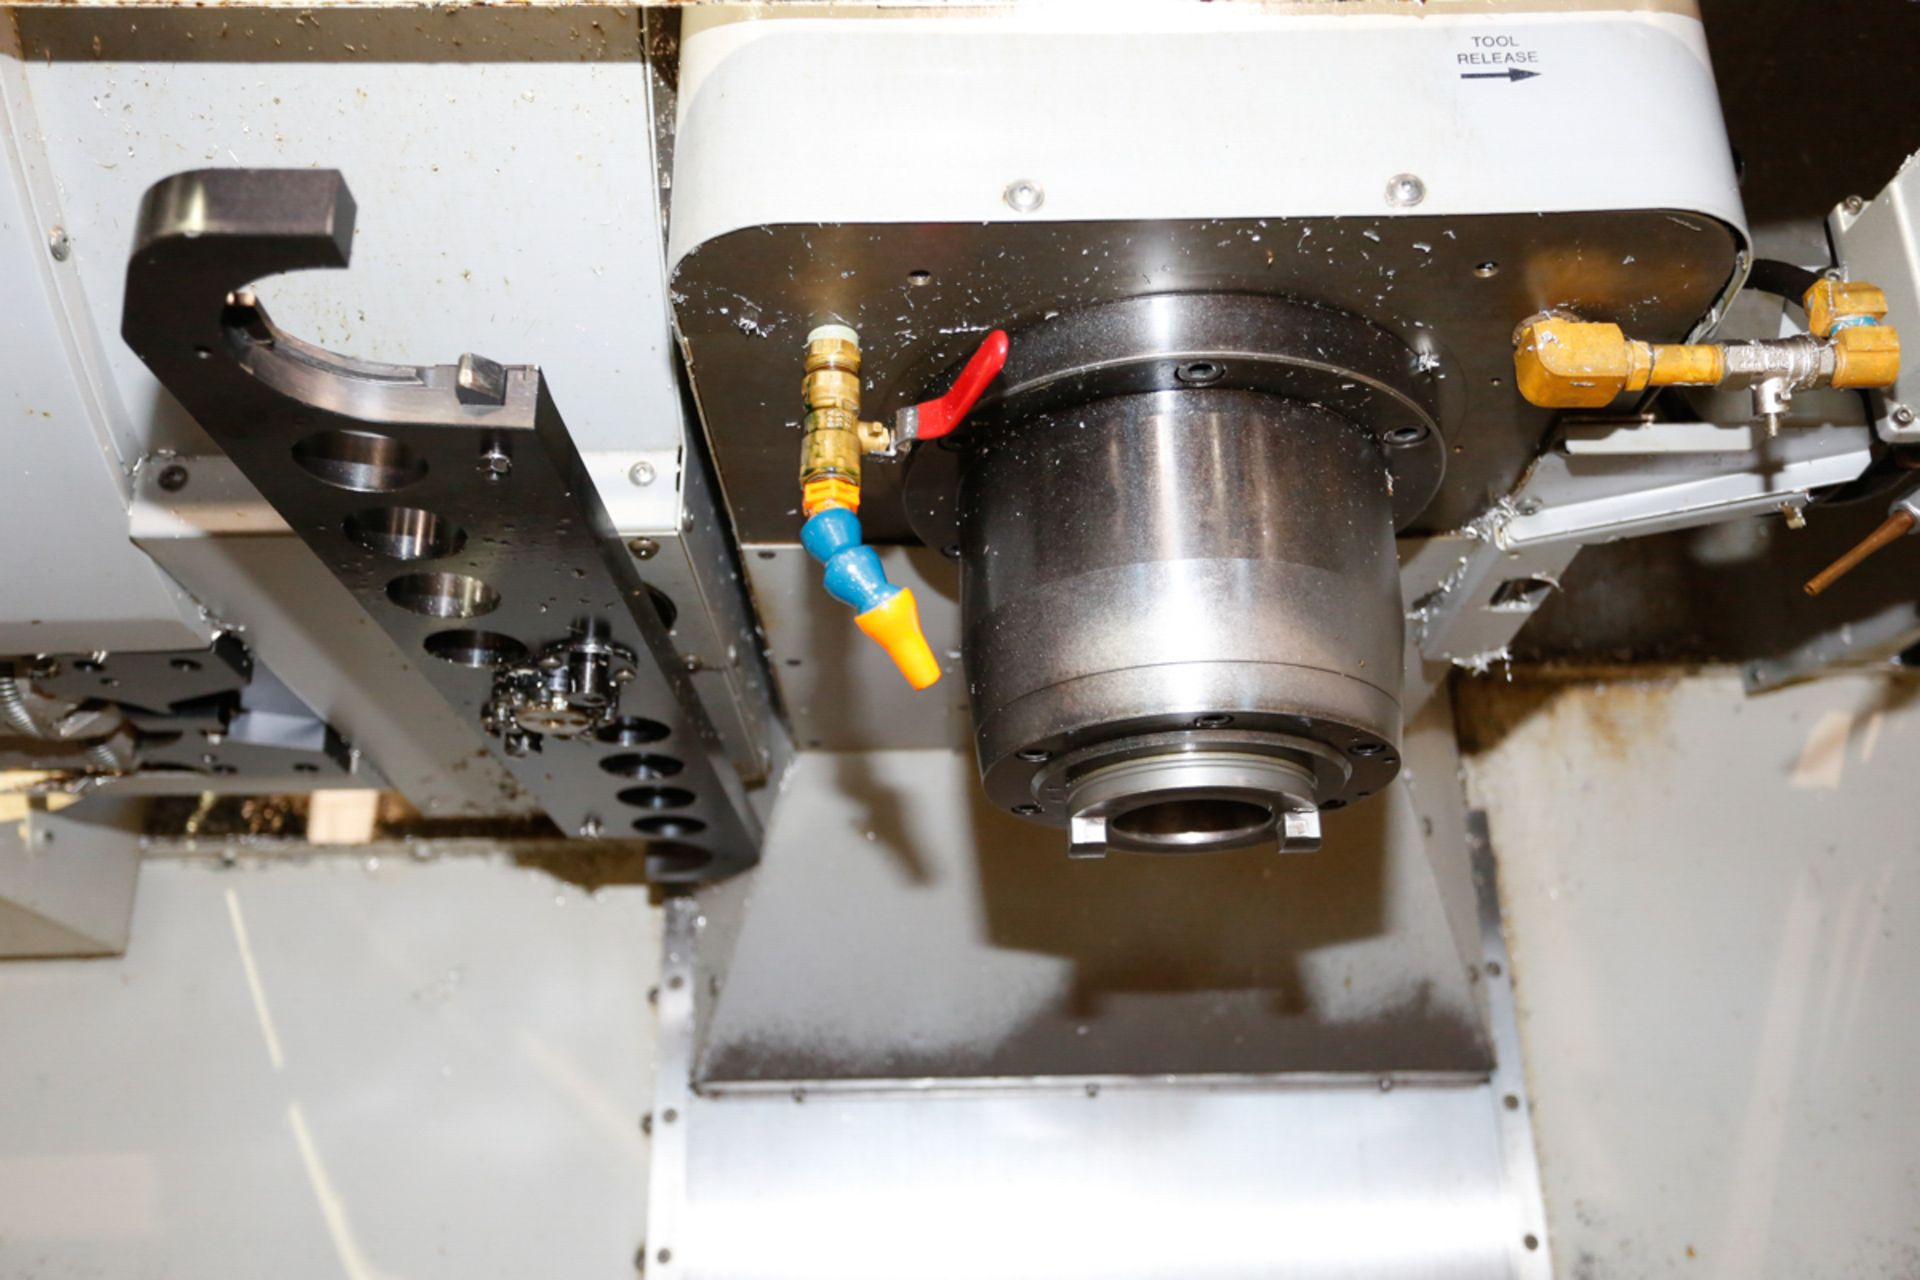 HAAS VF5/50XT 3-AXIX CNC VERTICAL MACHINING CENTER, EXTENDED TRAVEL, 10,000 RPM, 30 ATC, 30 HP 2 - Image 4 of 10